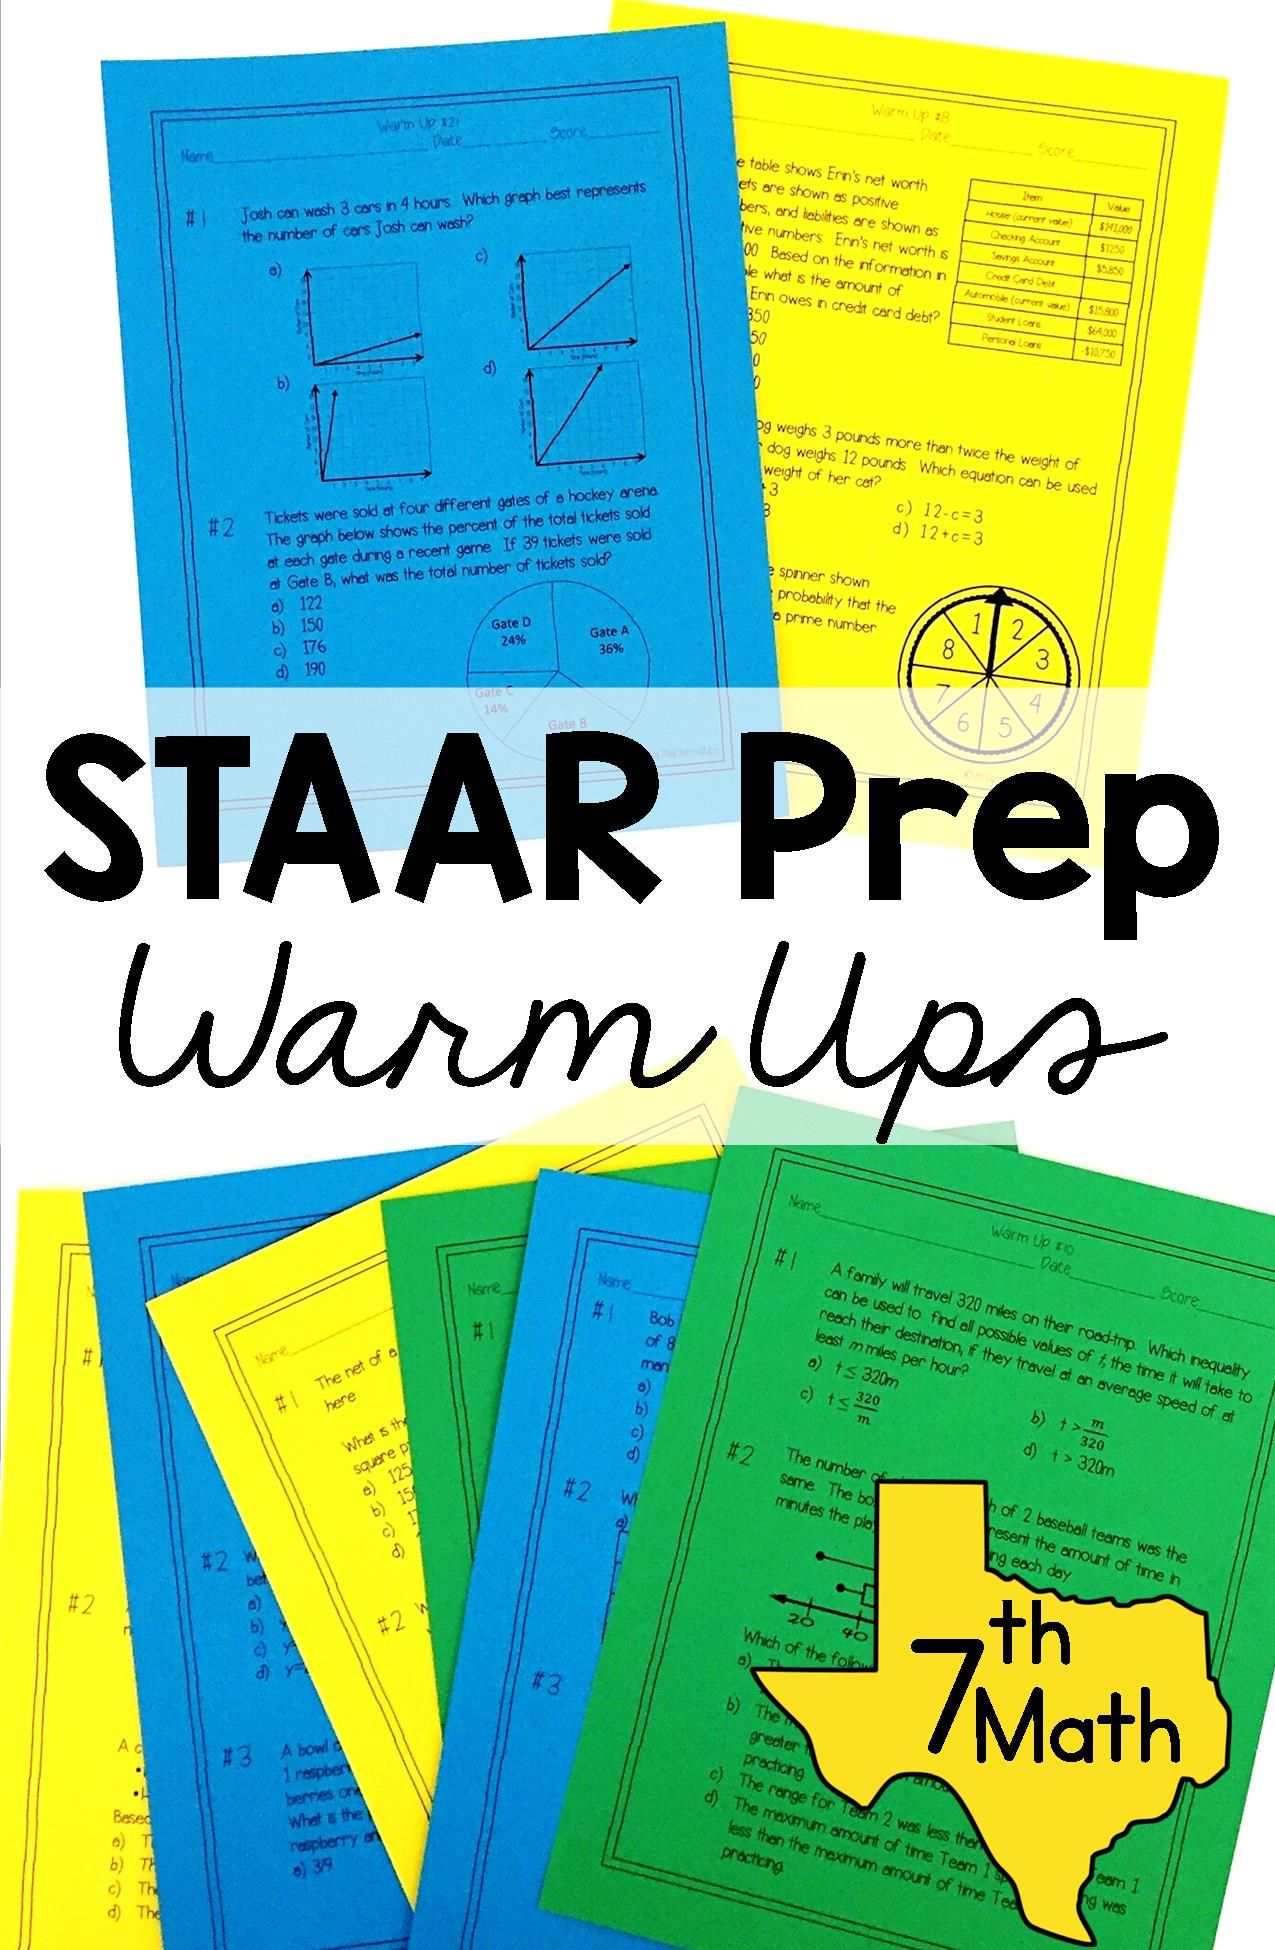 Pin On 7th Grade Math Worksheets Activities Ideas And Test Prep Resources [ 1950 x 1275 Pixel ]